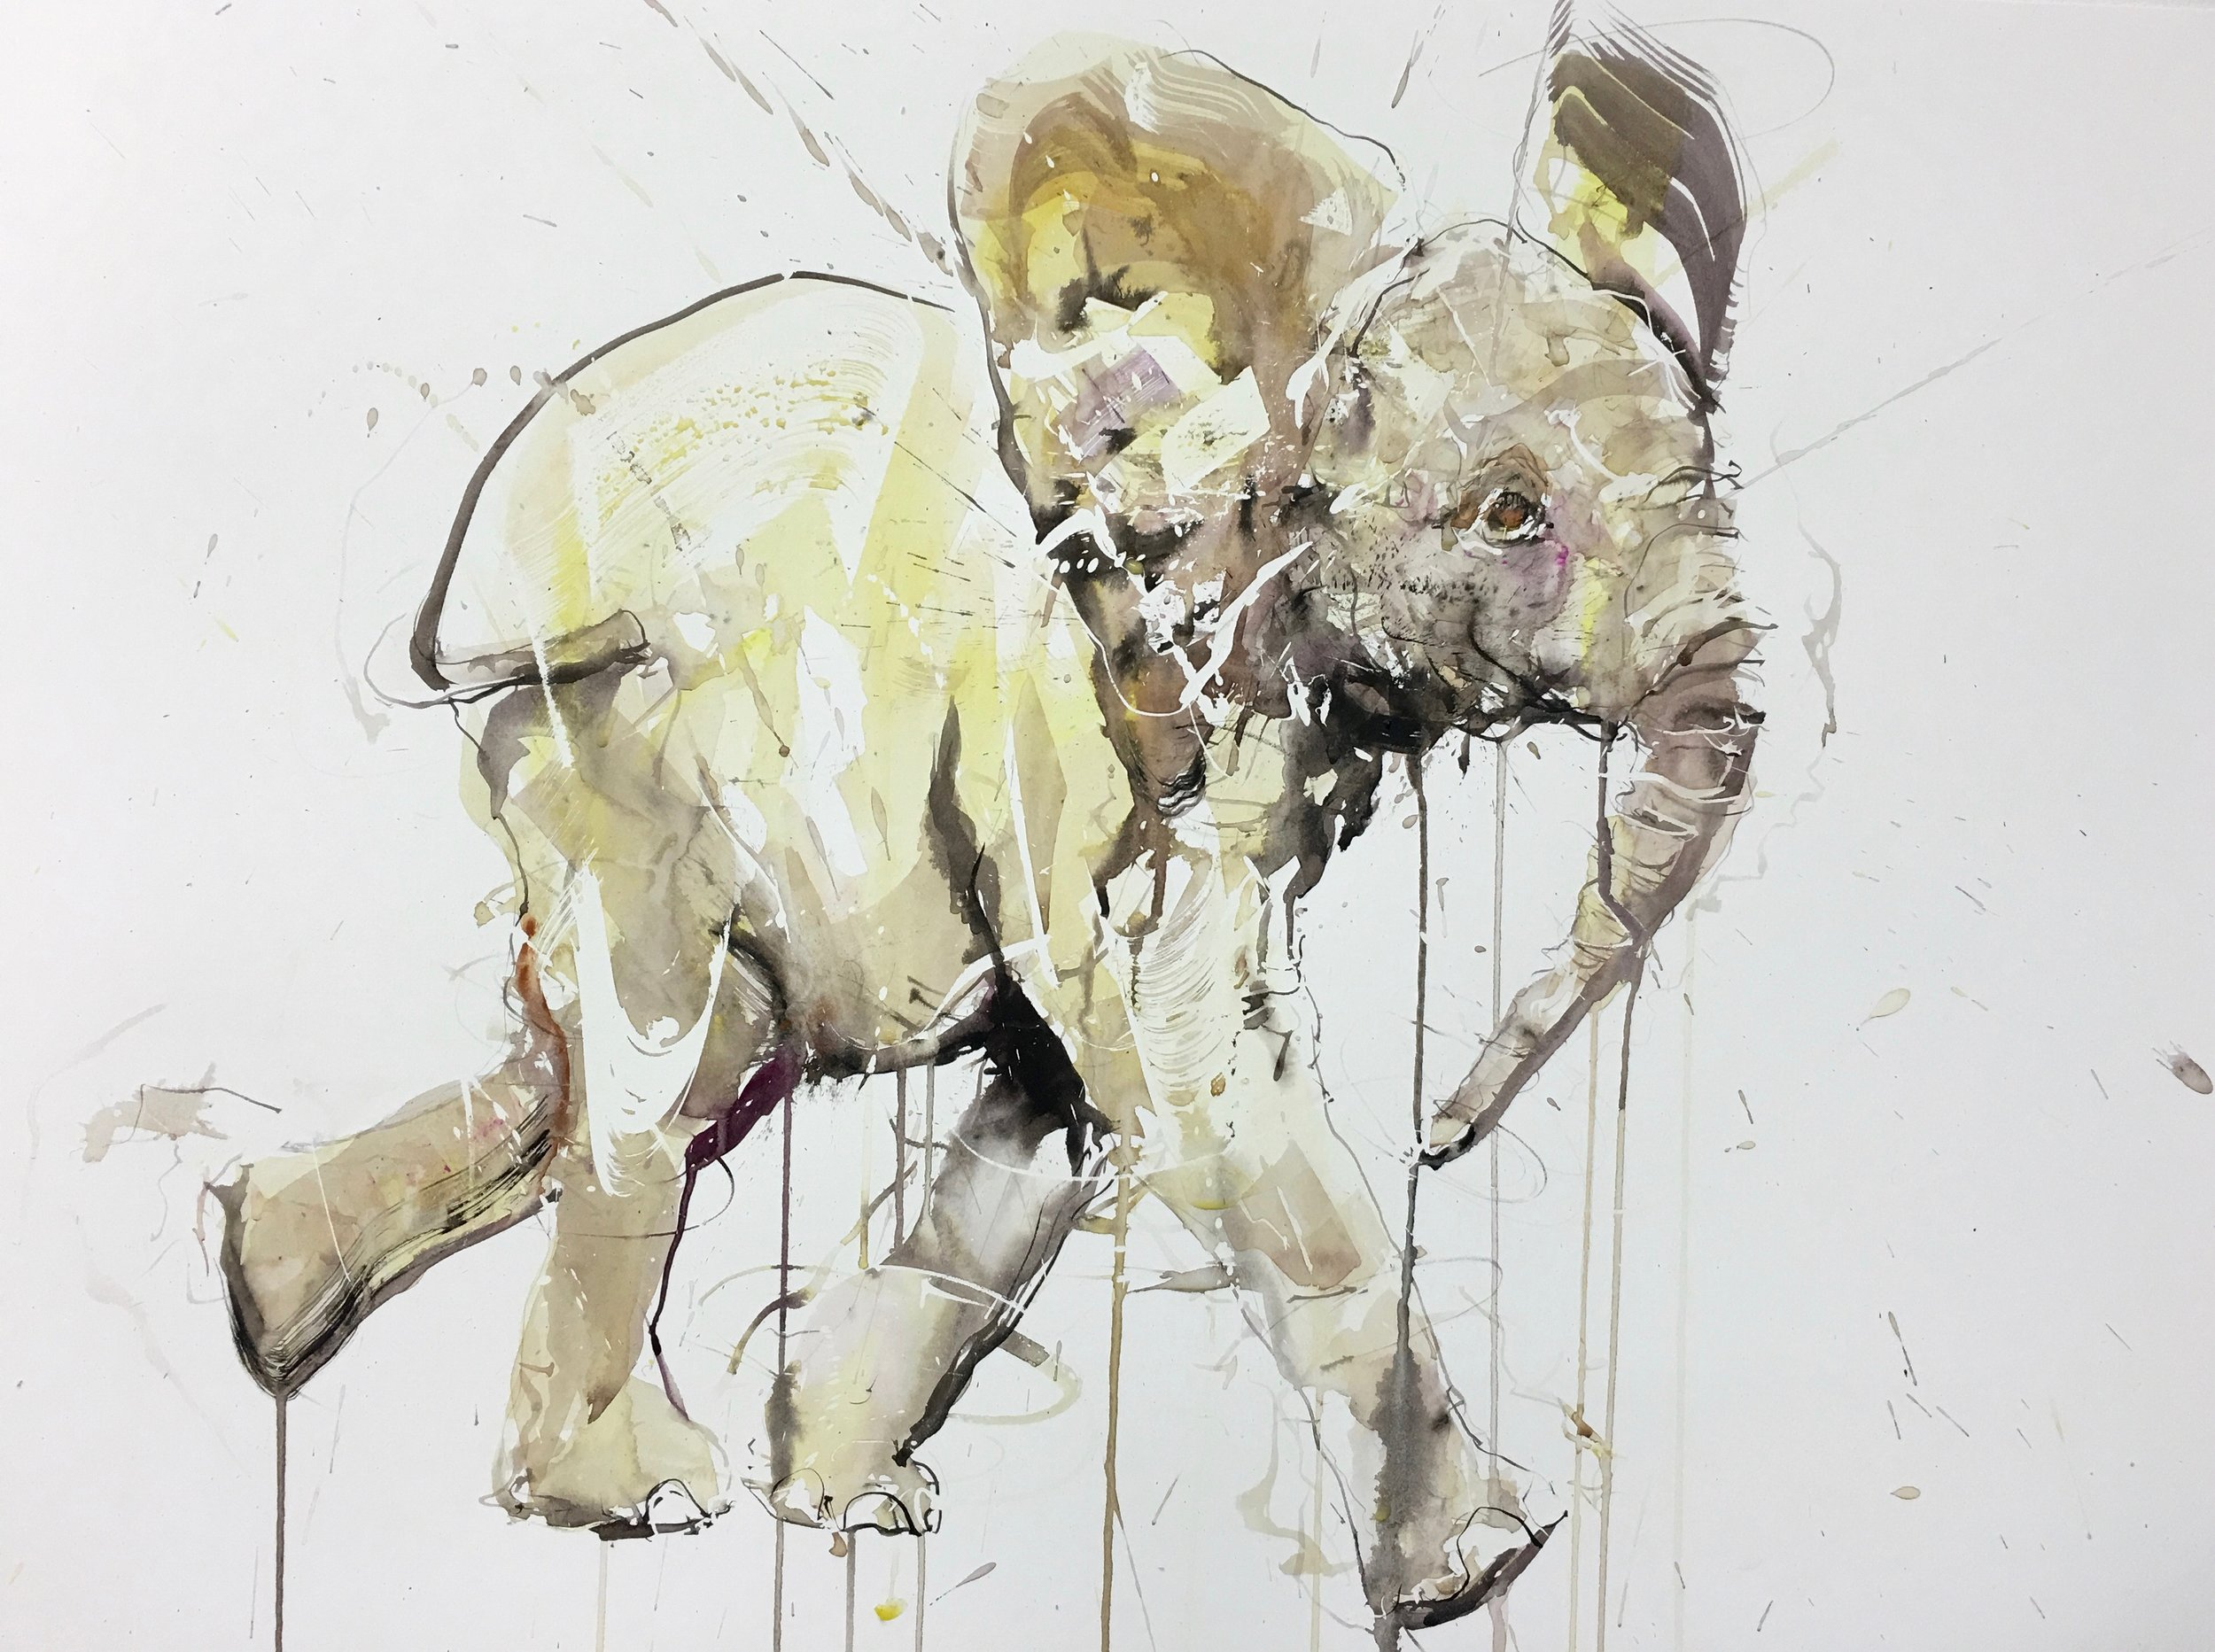 DaveWhite_Young Elephant XIII _2016_Watercolour on Fabriano Artistico 640gsm_30x 22.jpg